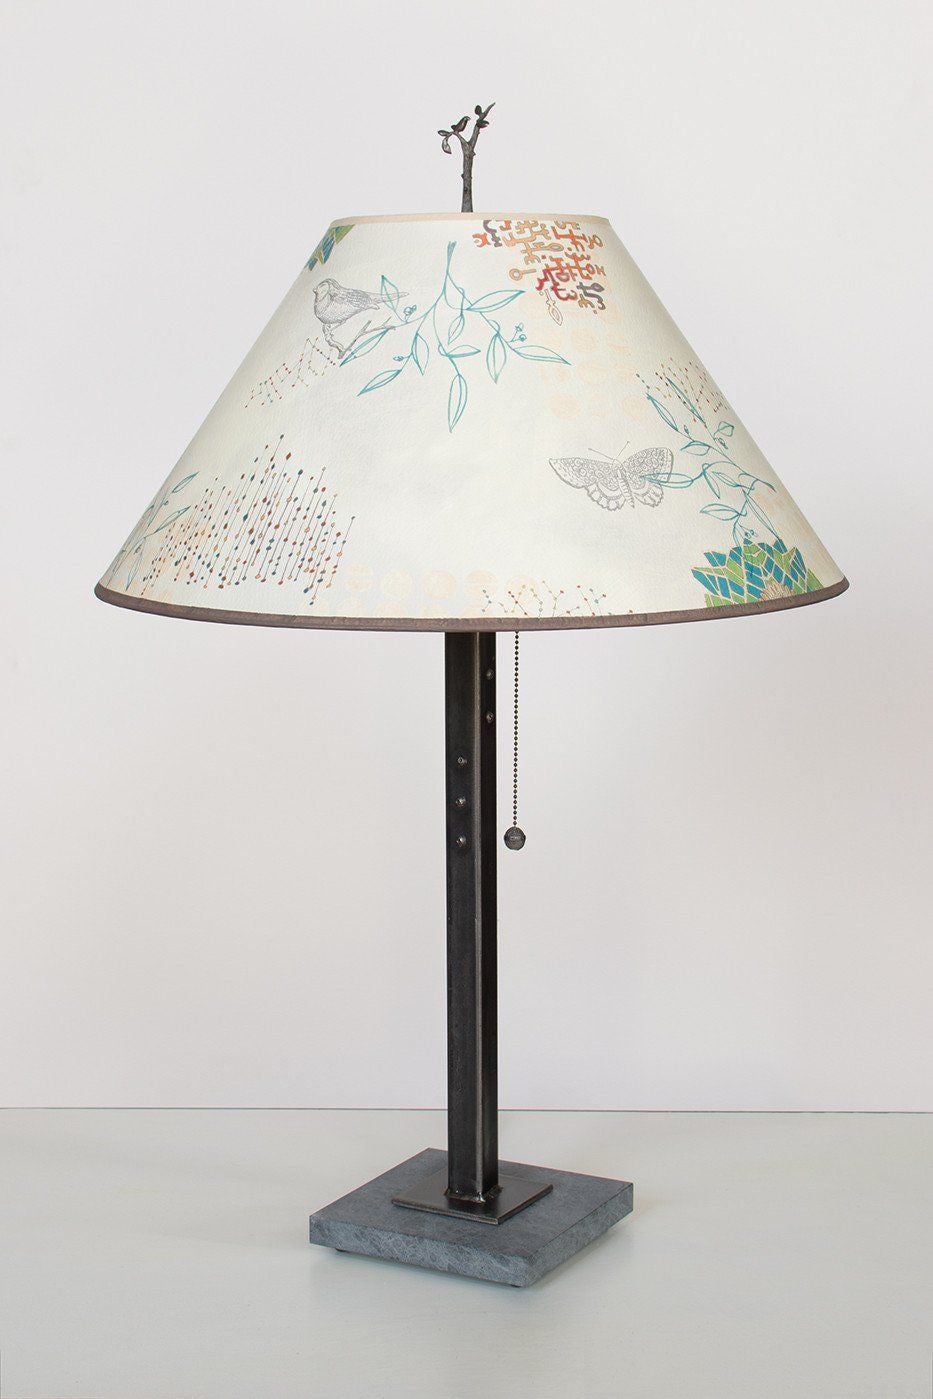 Steel Table Lamp on Italian Marble with Large Conical Shade in Ecru Journey